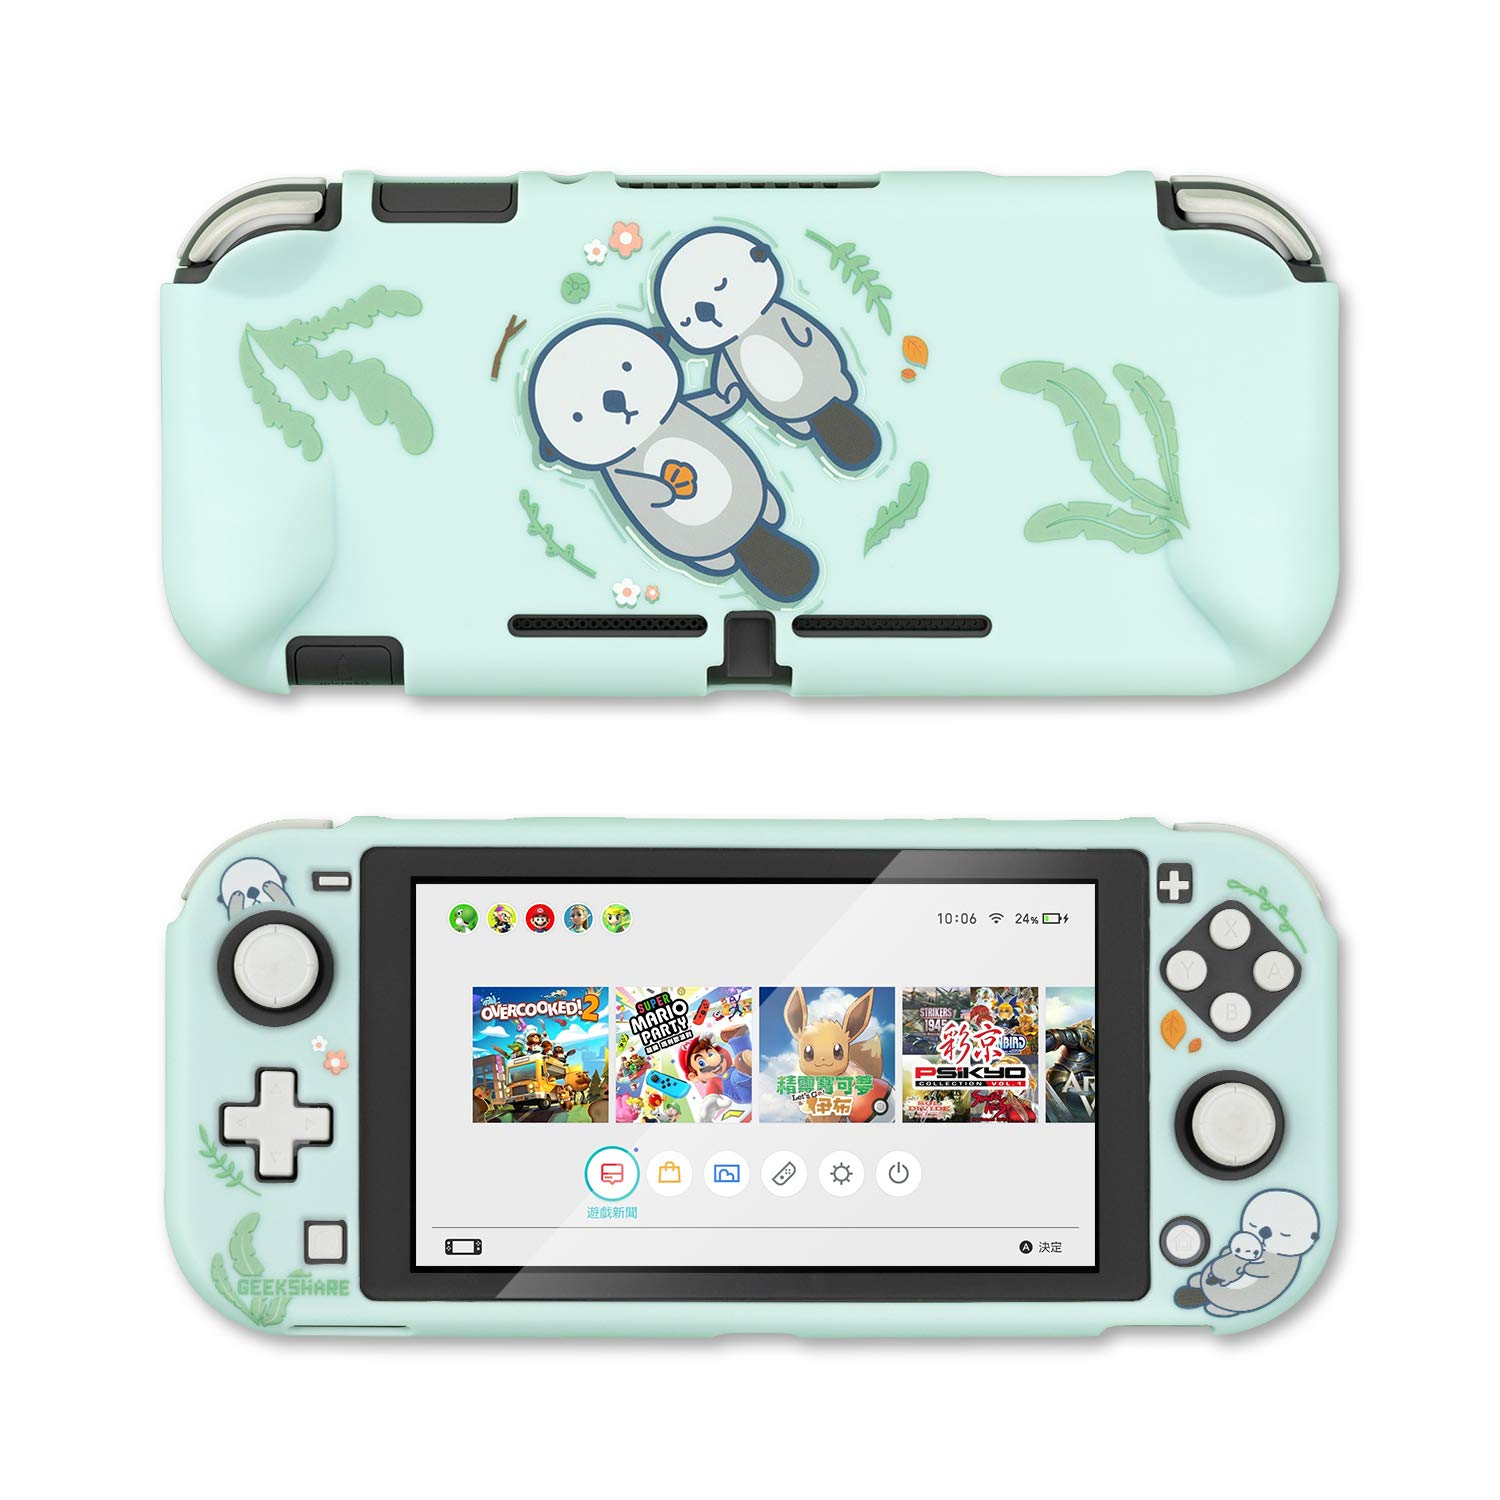 GeekShare Protective Case for Nintendo Switch Lite, Anti-Collision Non-Slip Shockproof Silicone Protective Cover Shell for Nintendo Switch Lite (Sea Otter)